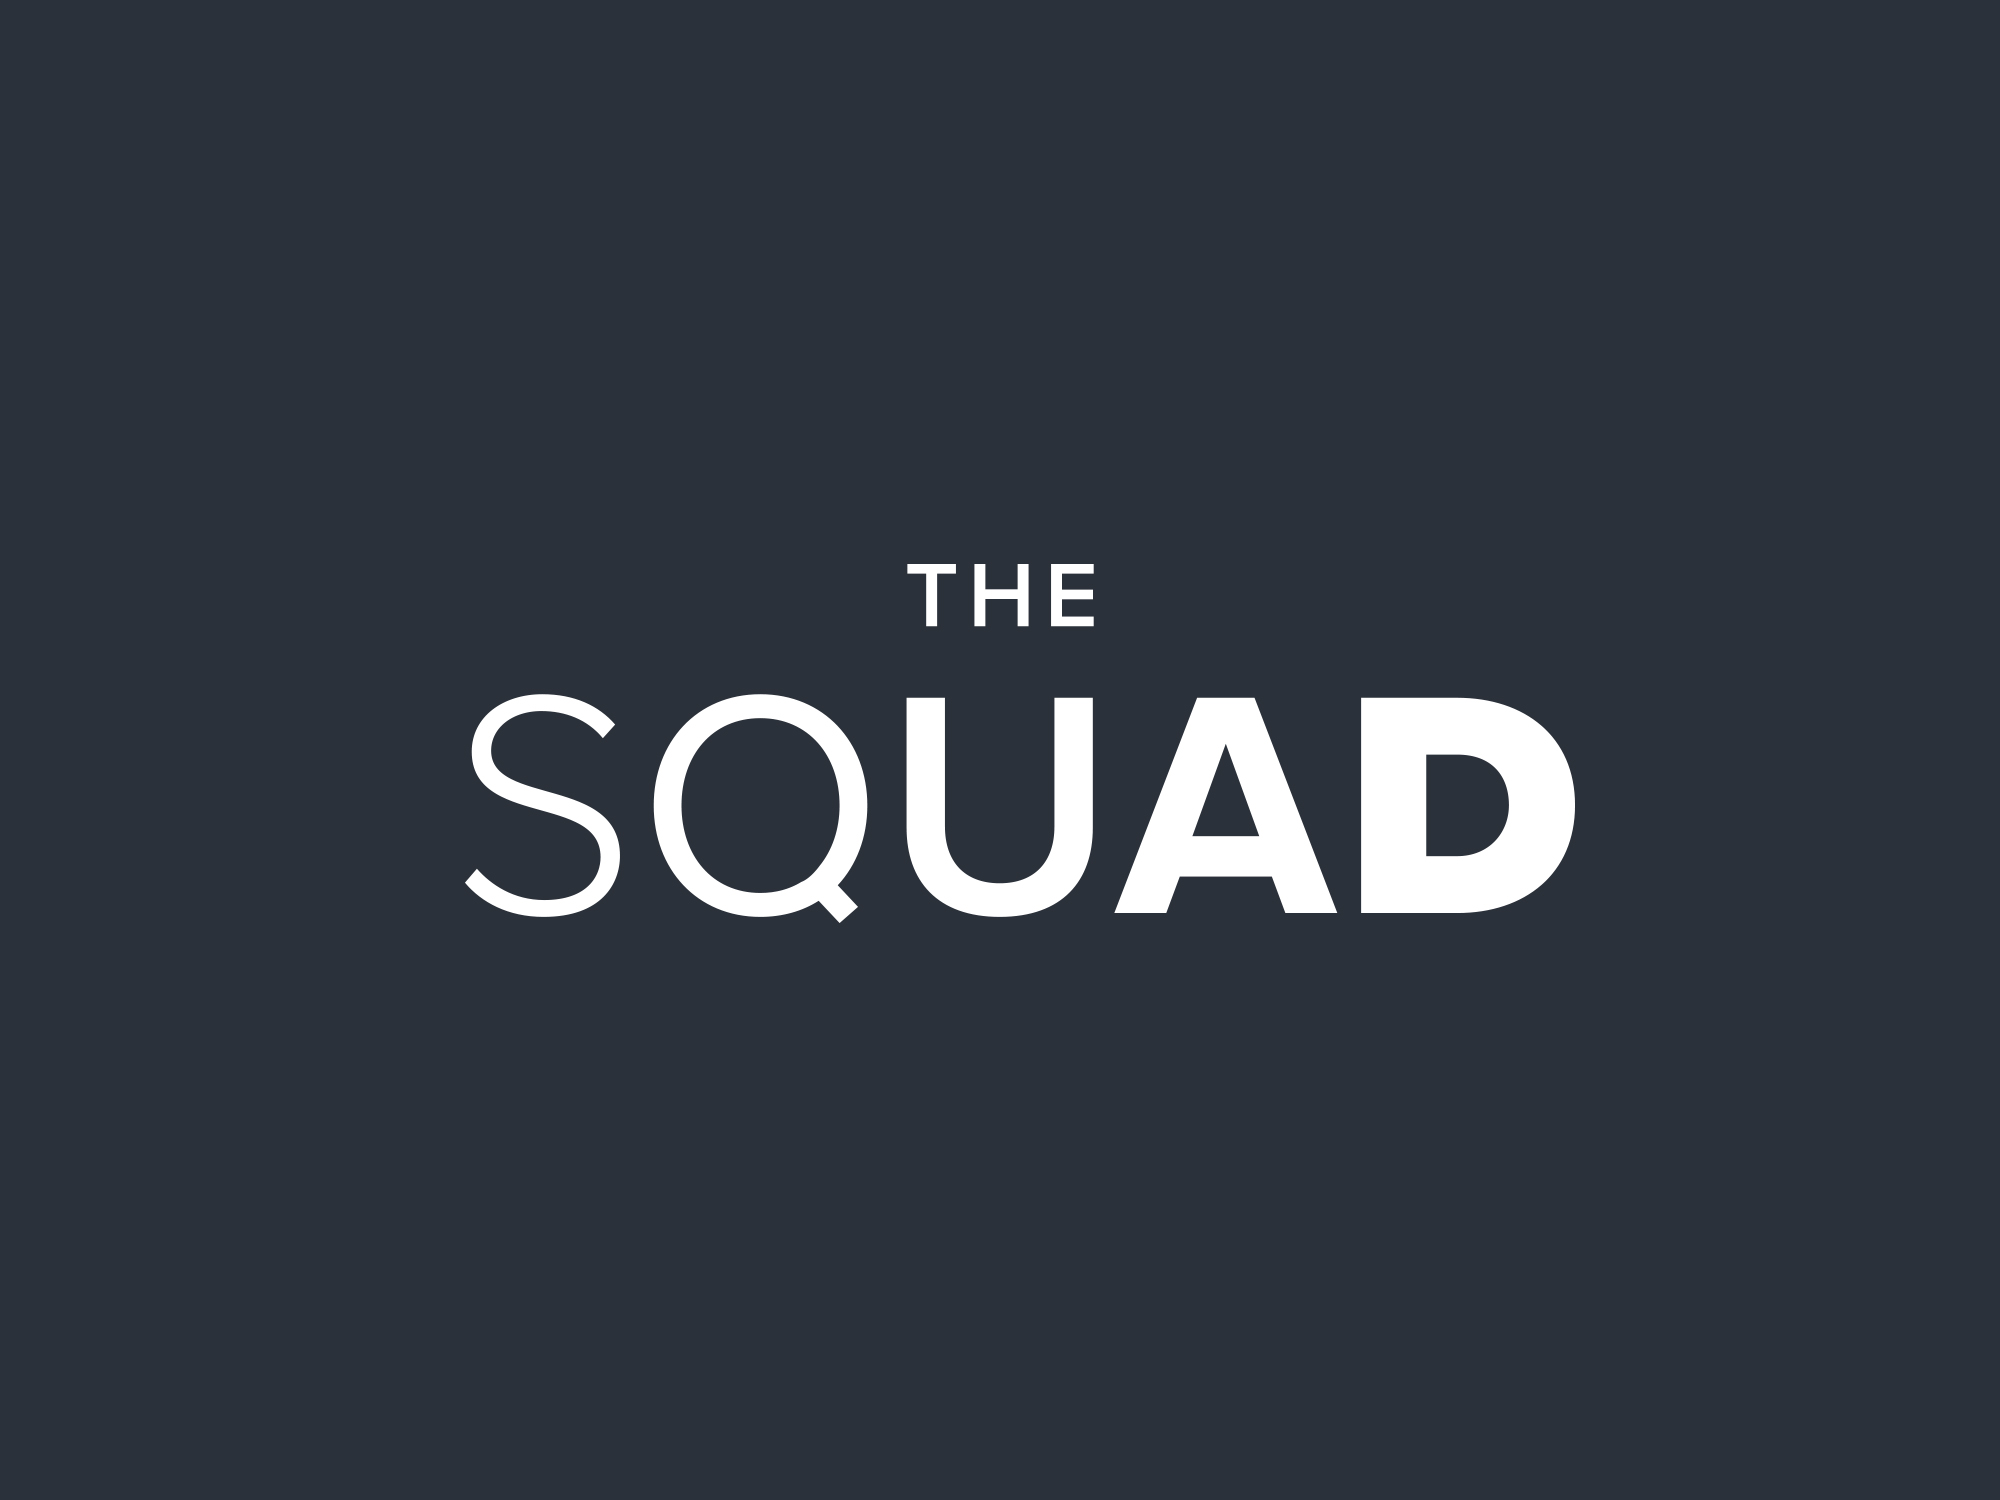 Cover image: The Squad